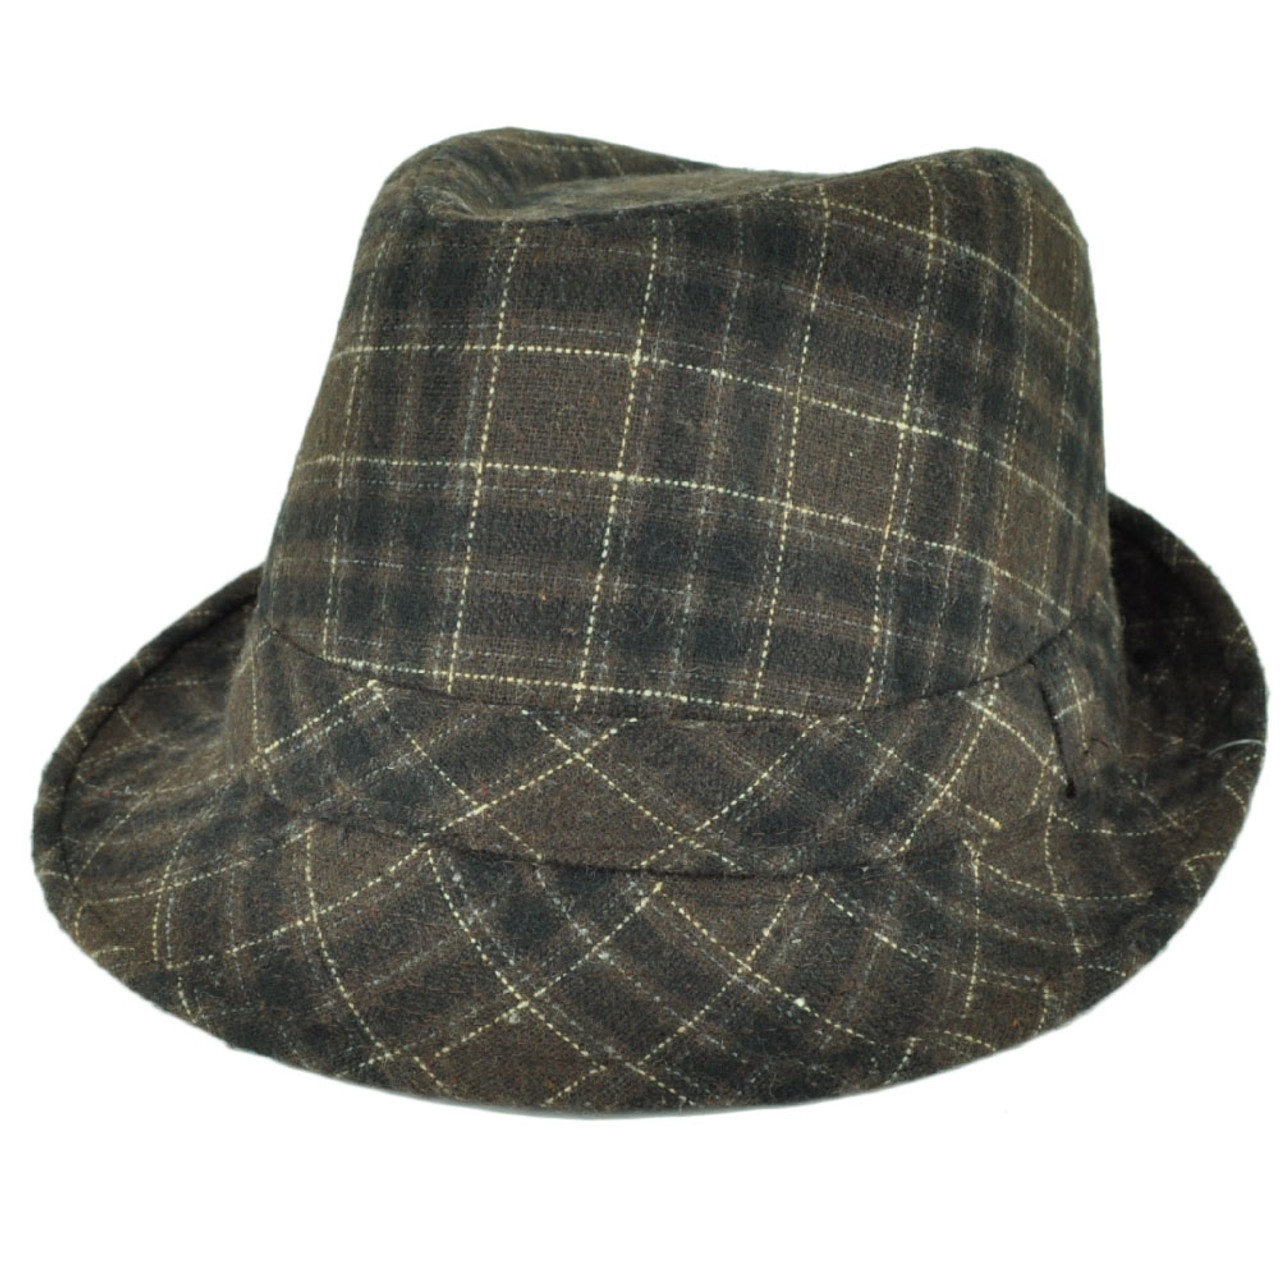 8b56fc0756453 Fedora Plaid Pattern Brown Wool Diamond Top Gangster Trilby Stetson Hat  58cm - Cap Store Online.com